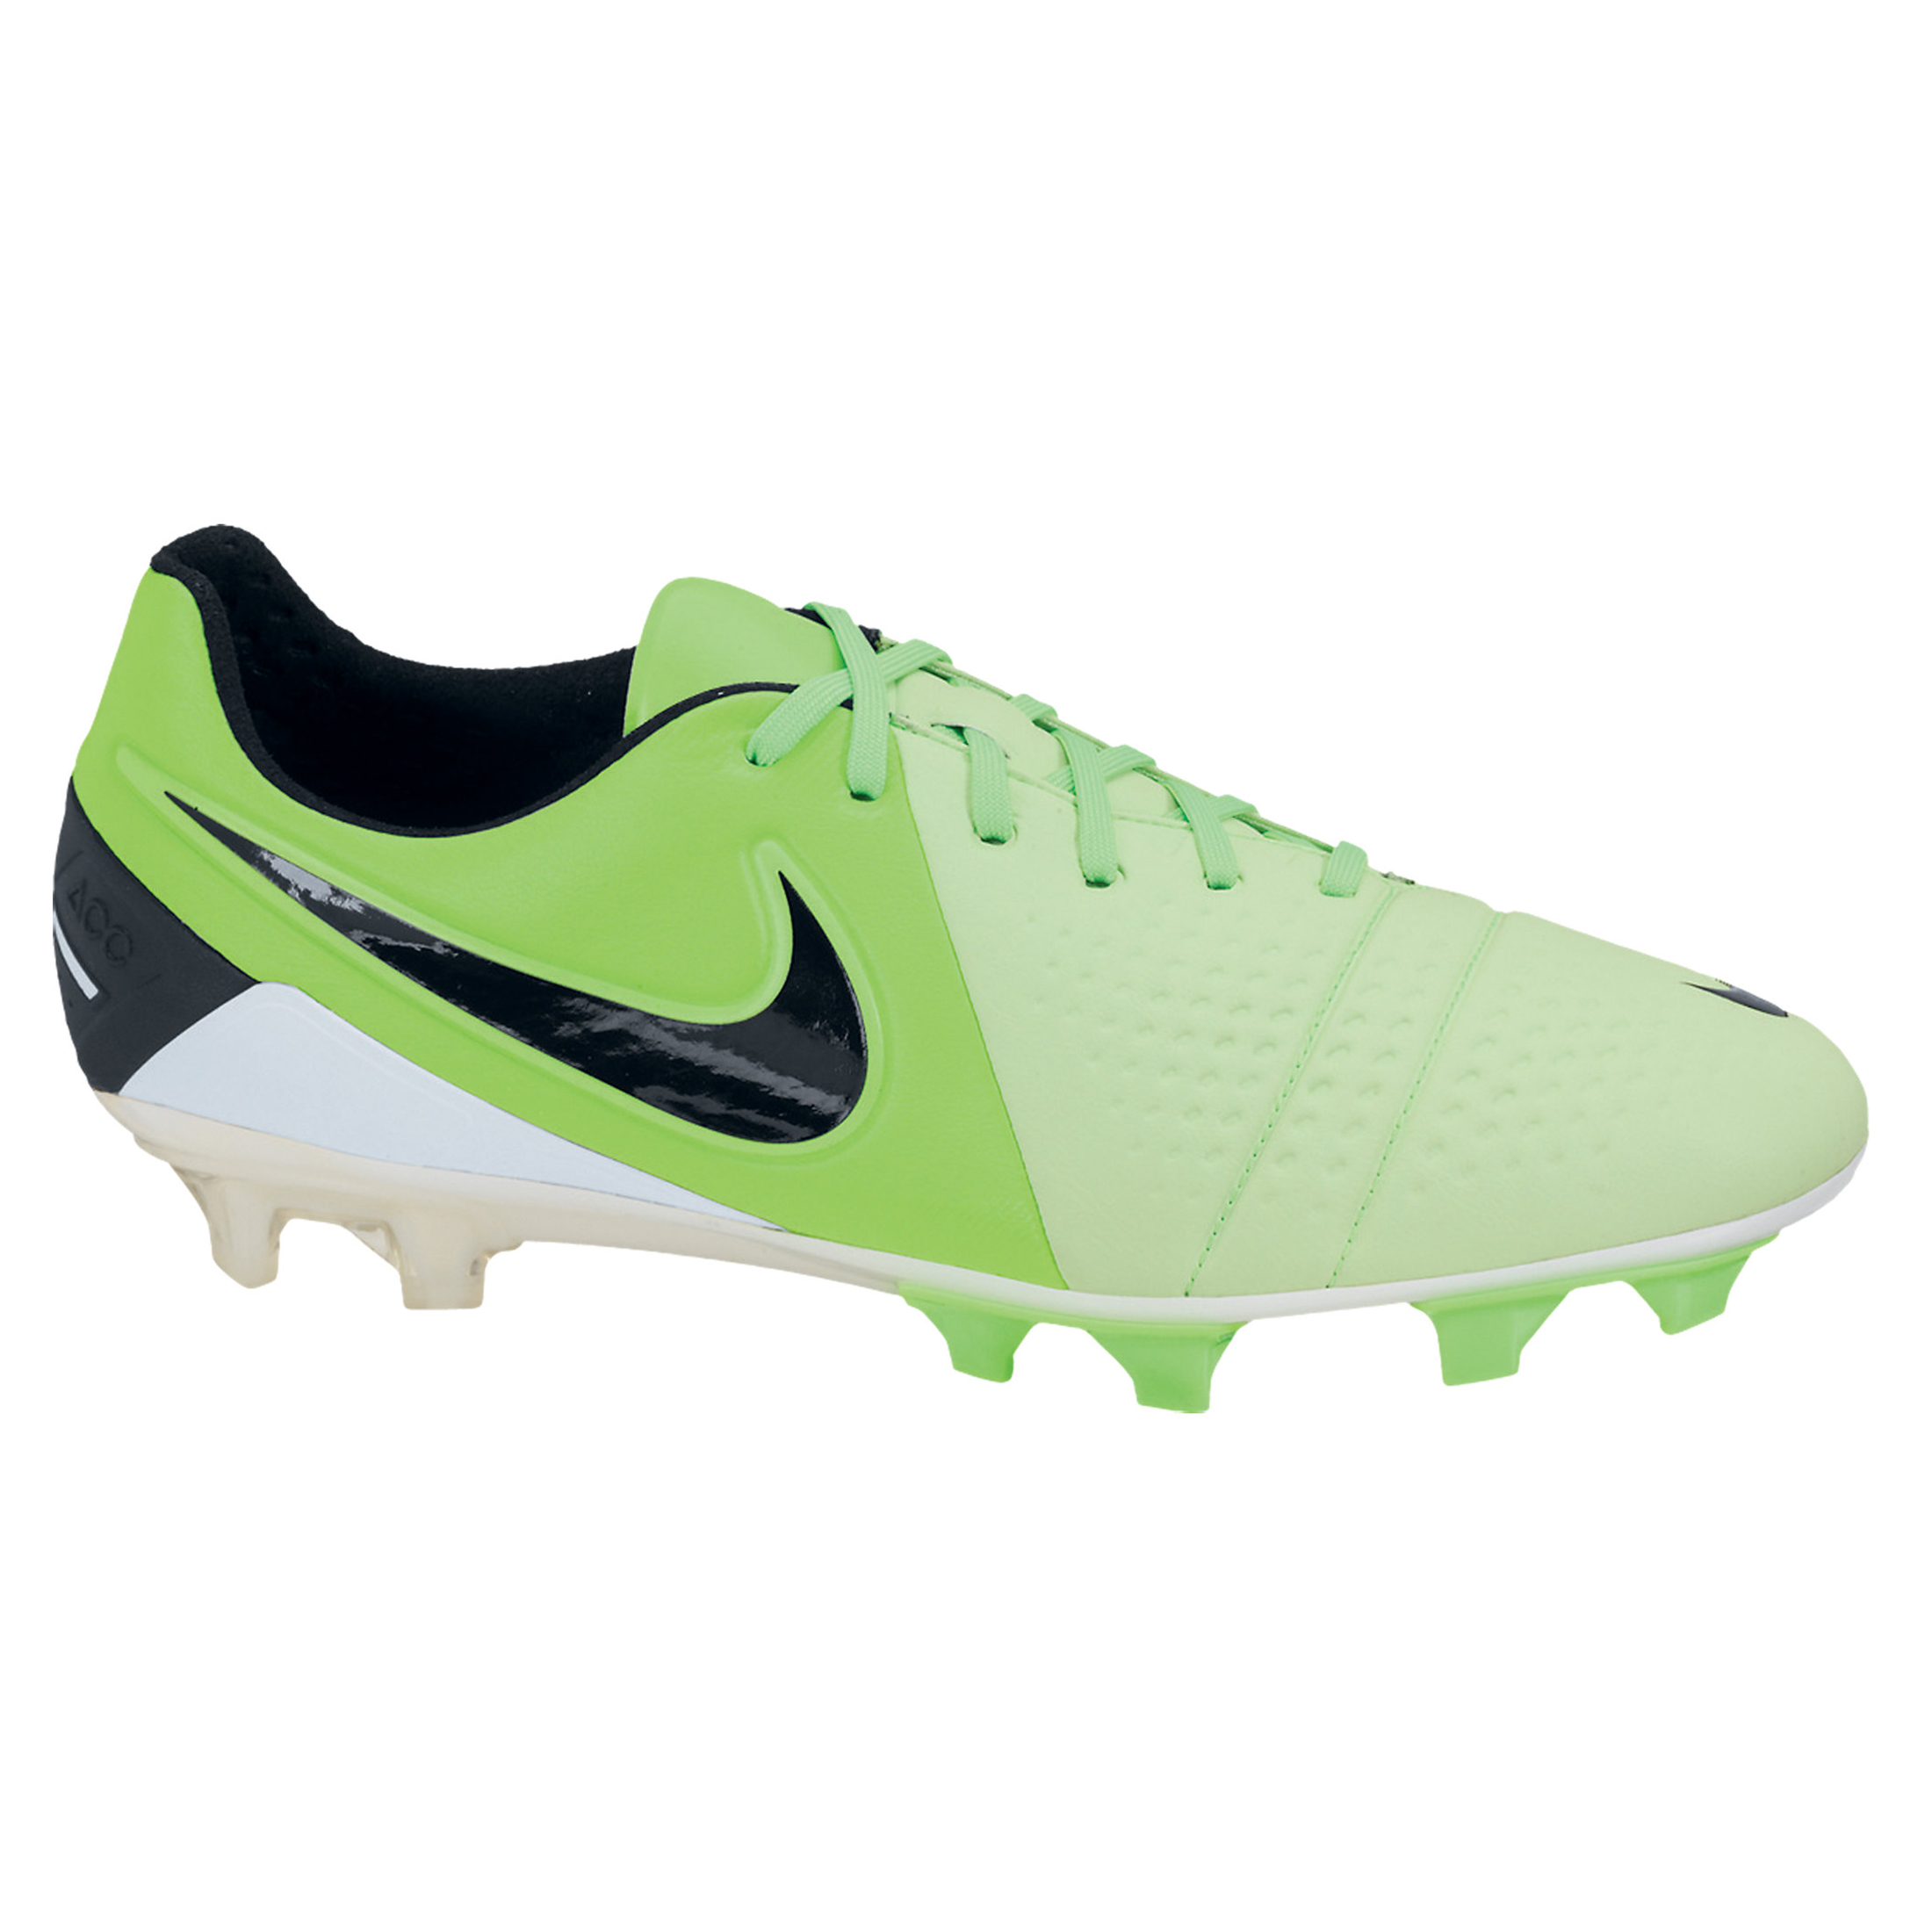 CTR360 Maestri III FG Fresh Mint/Black/Neo Lime